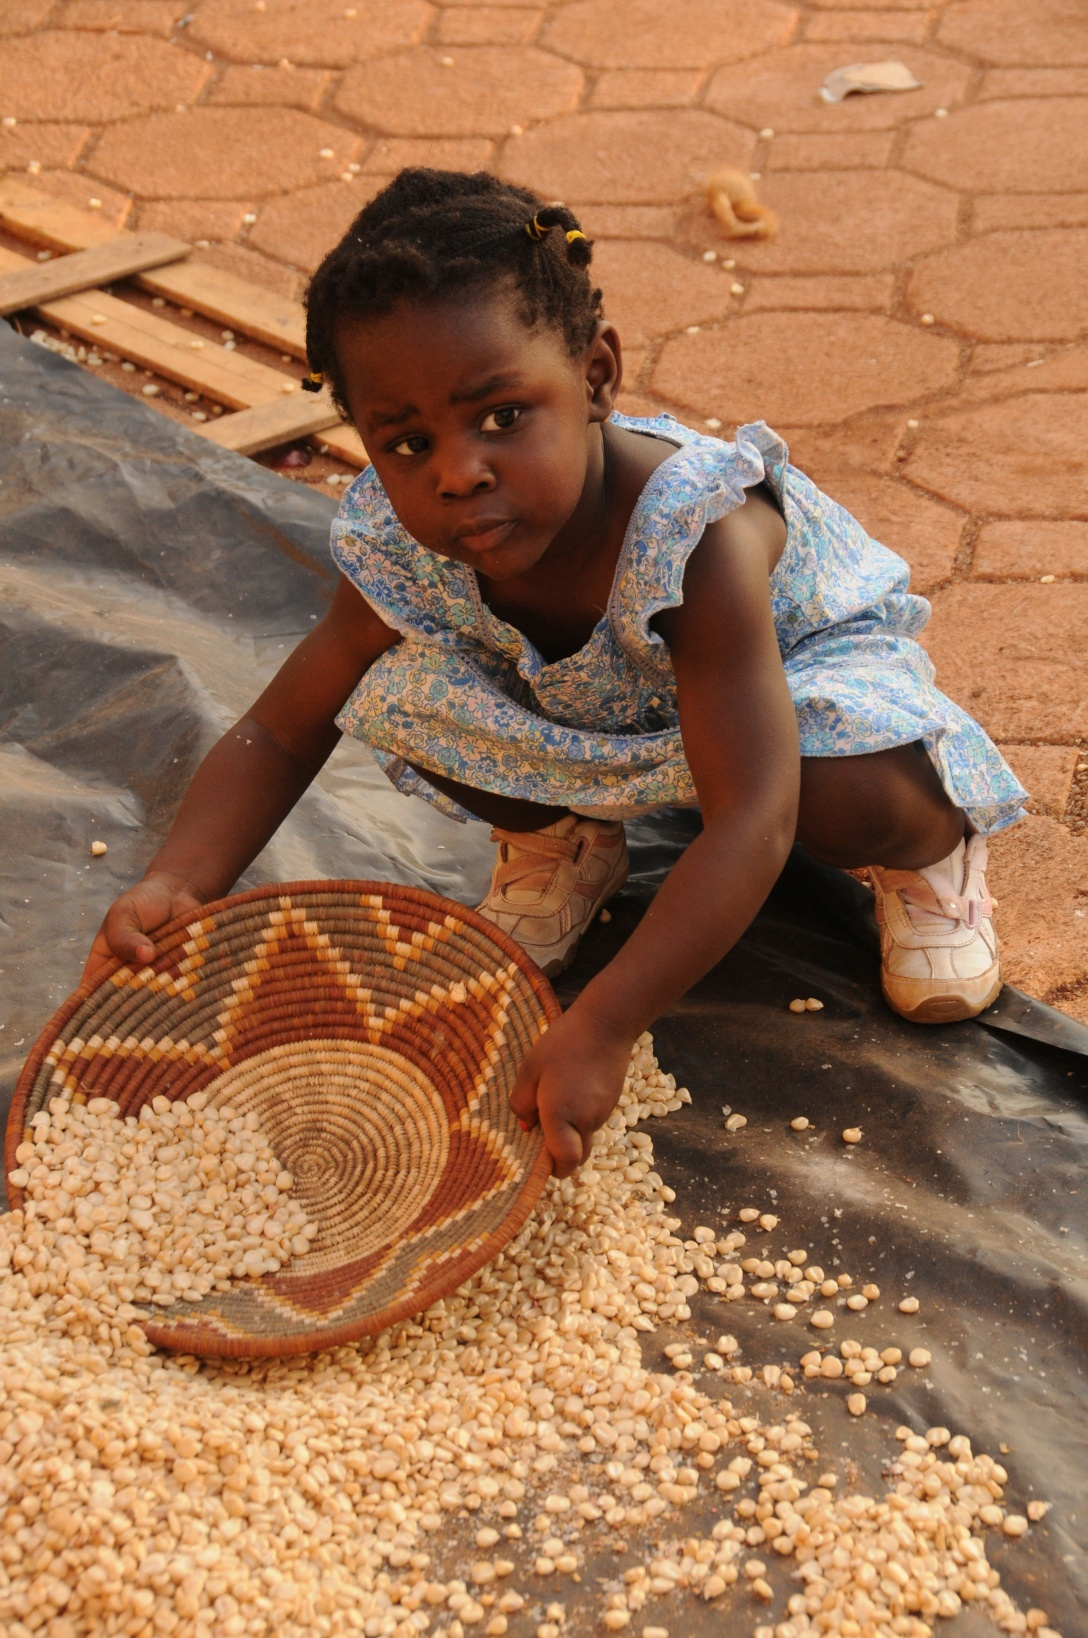 She was helping clean the maize on our last trip in Uganda. This is maize our children helped to grow!